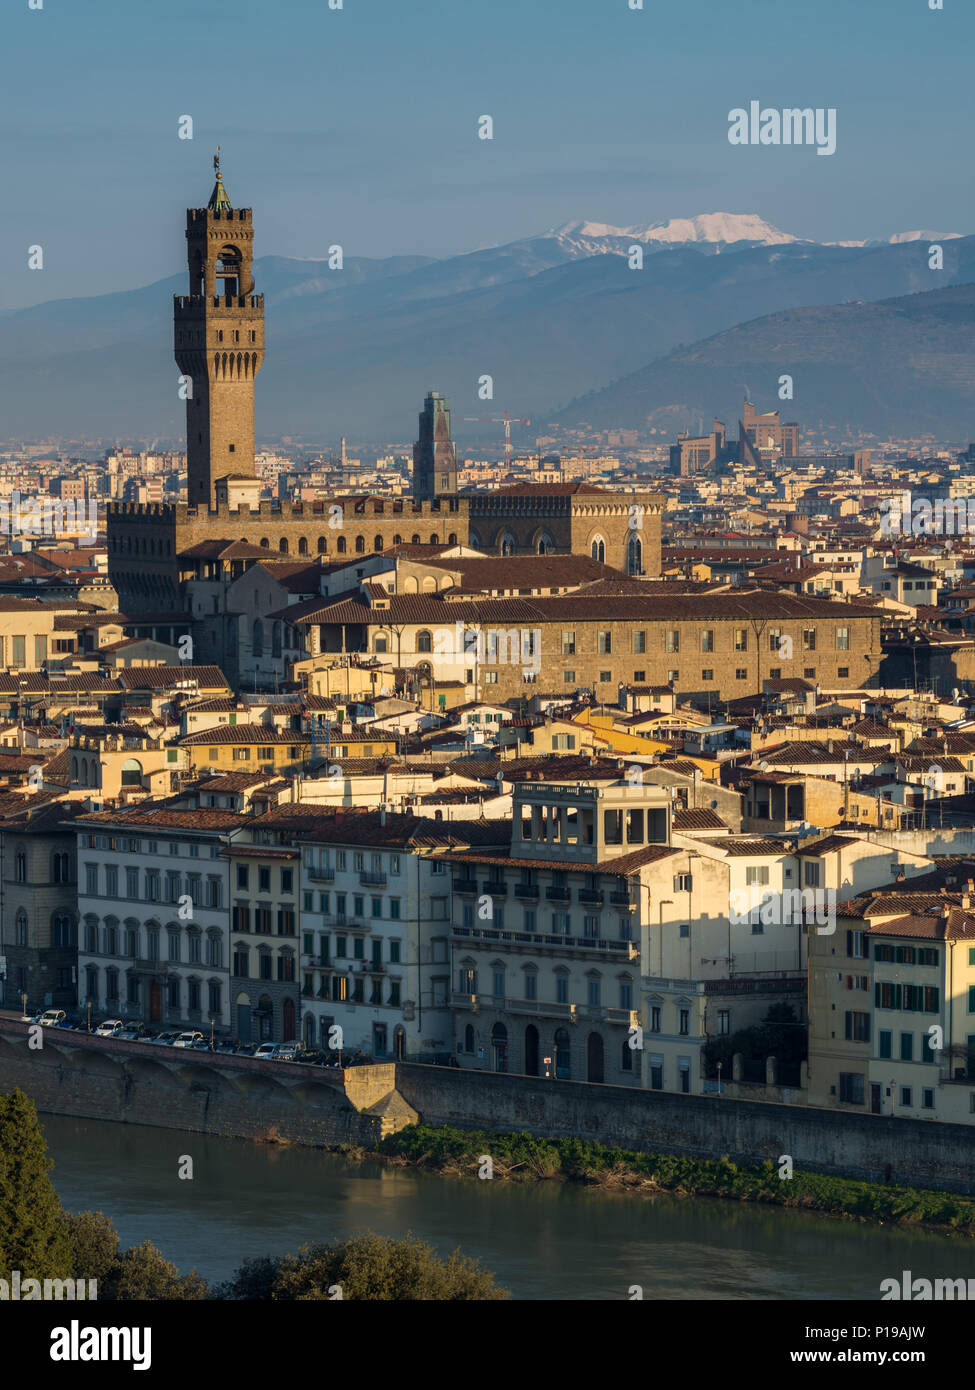 Florence, Italy - March 24, 2018: Morning light illuminates the cityscape of Florence, including the historic landmark of the Palazzo Vecchio. - Stock Image